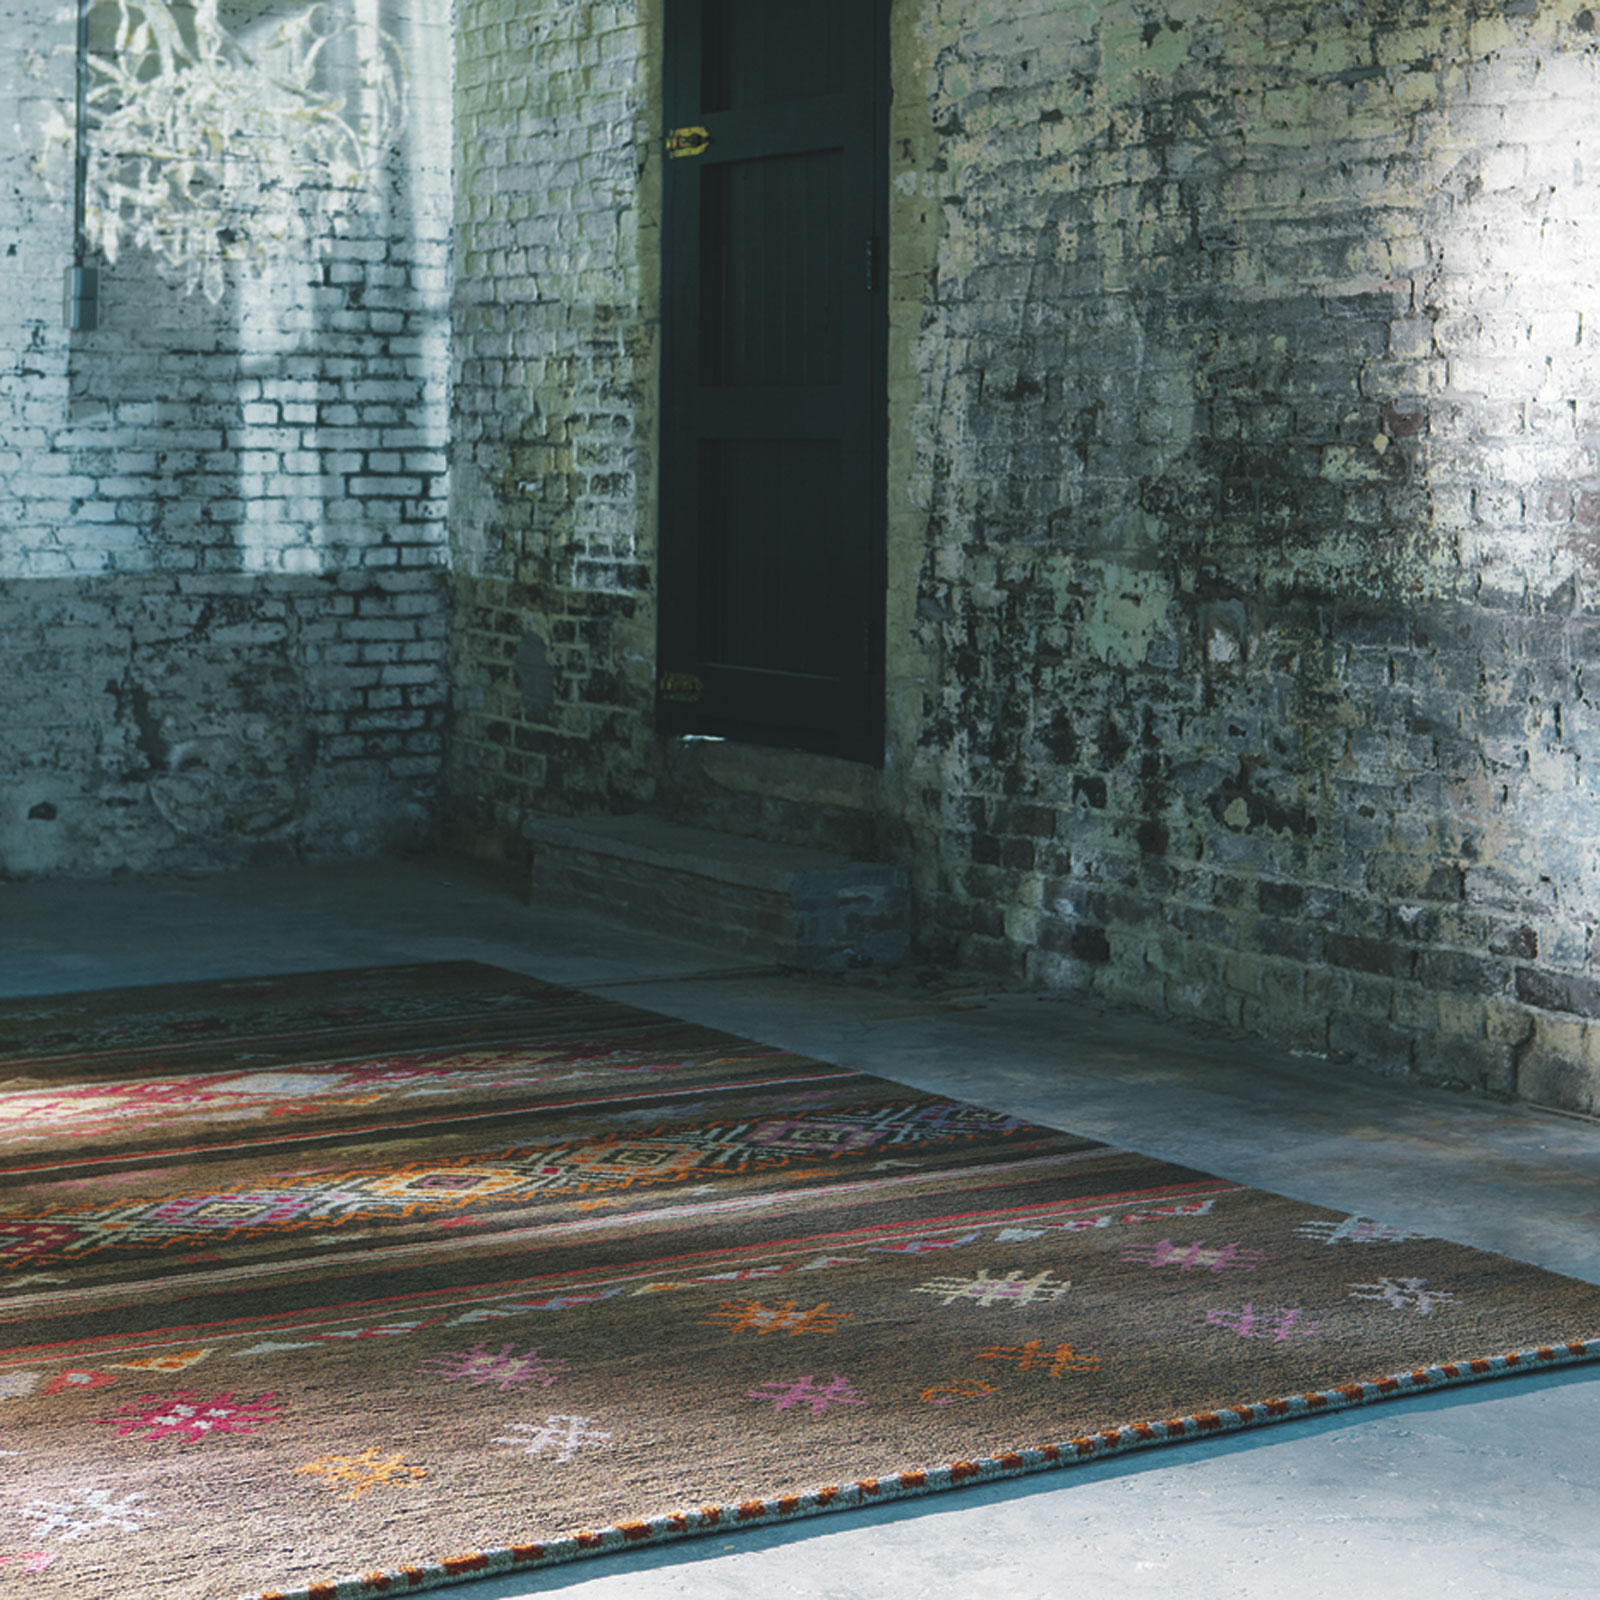 Himali Ruby 34905 Hand Knotted Wool Rugs by Brink & Campman